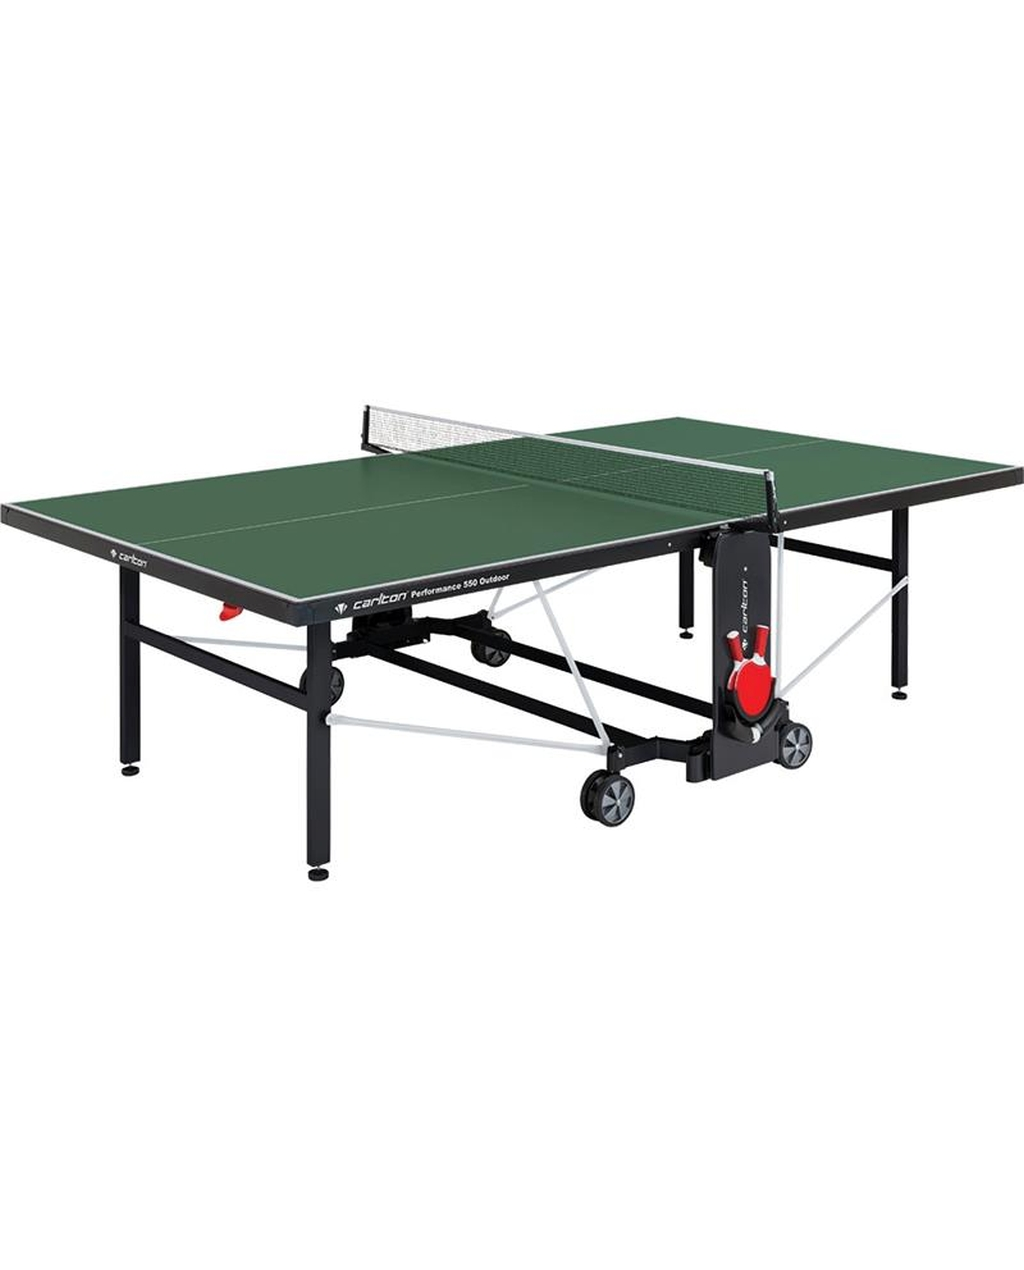 Carlton Outdoor Table Tennis Table